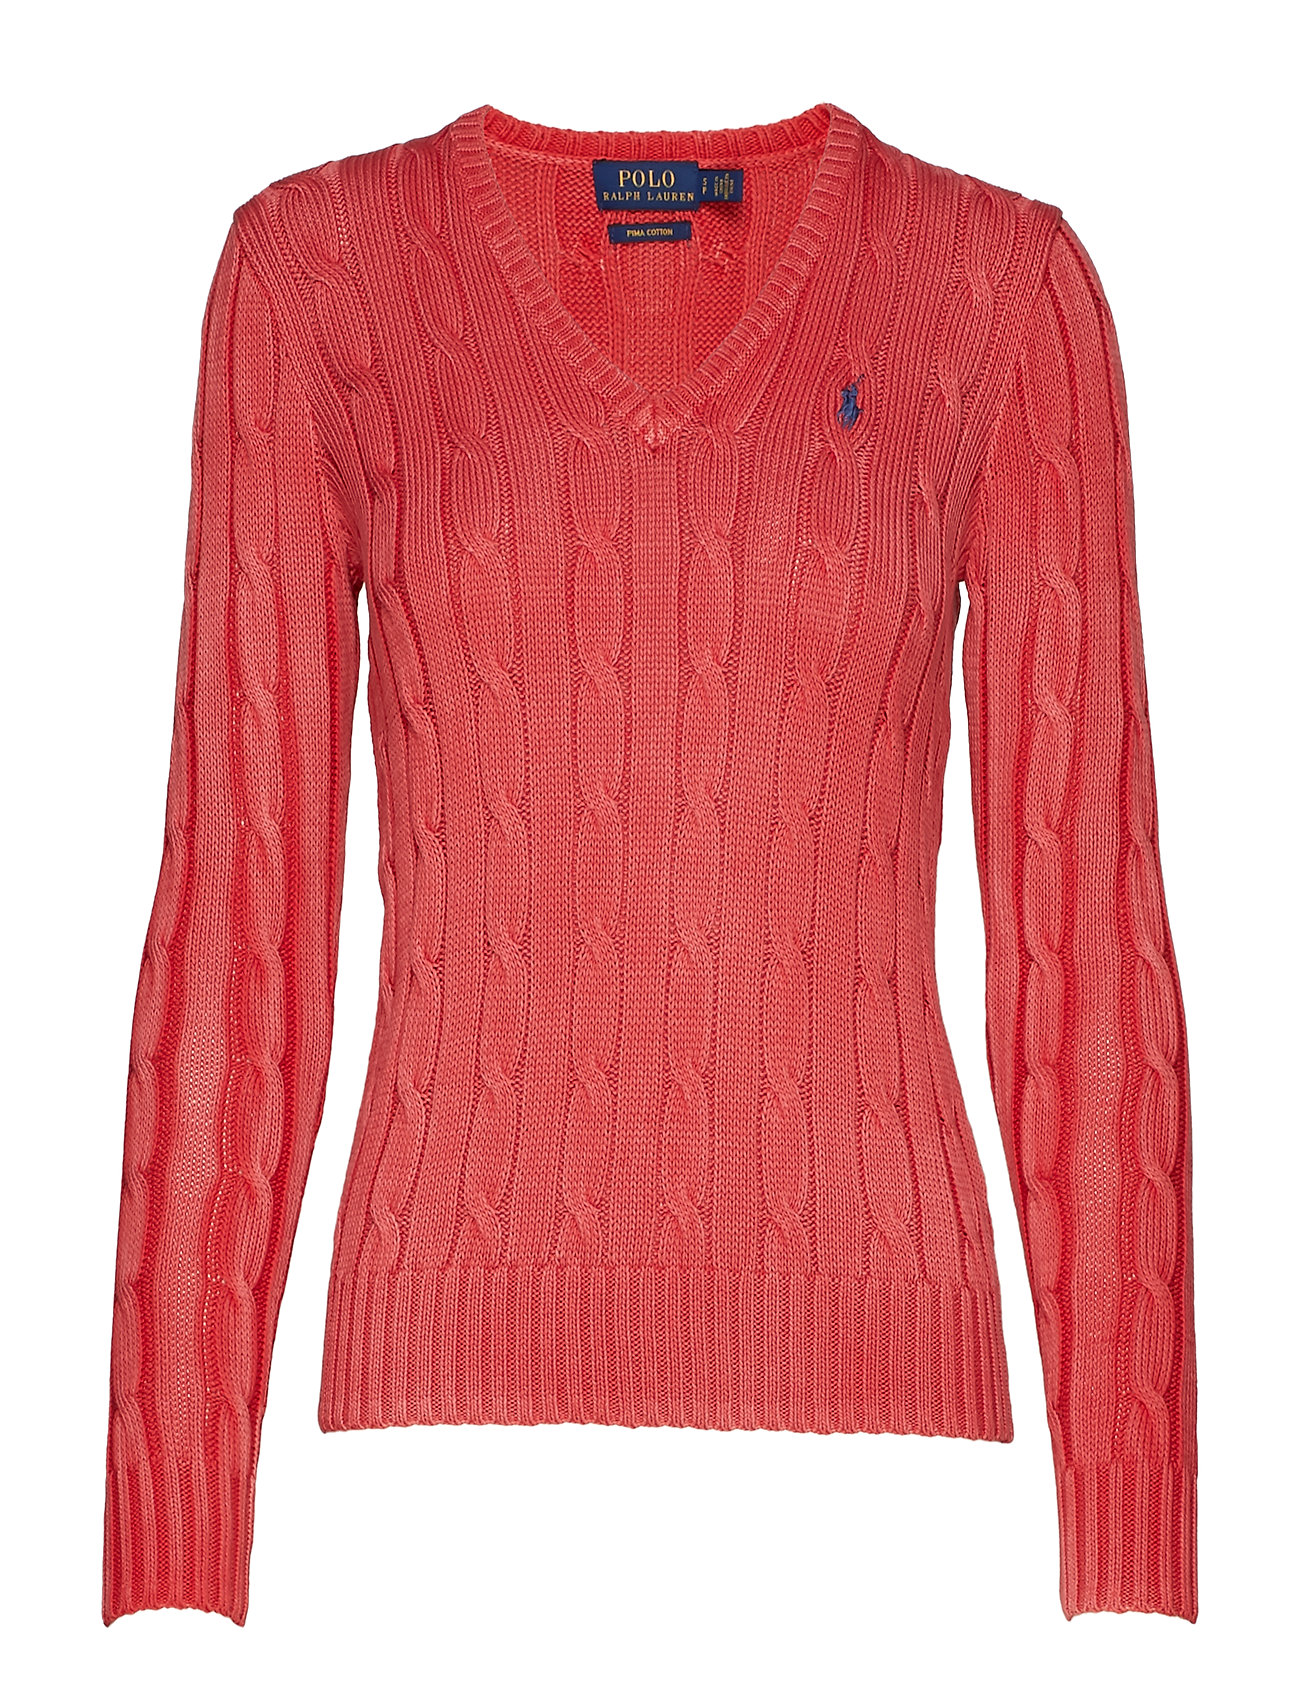 Polo Ralph Lauren Cotton V-Neck Cable Sweater - CORALLO